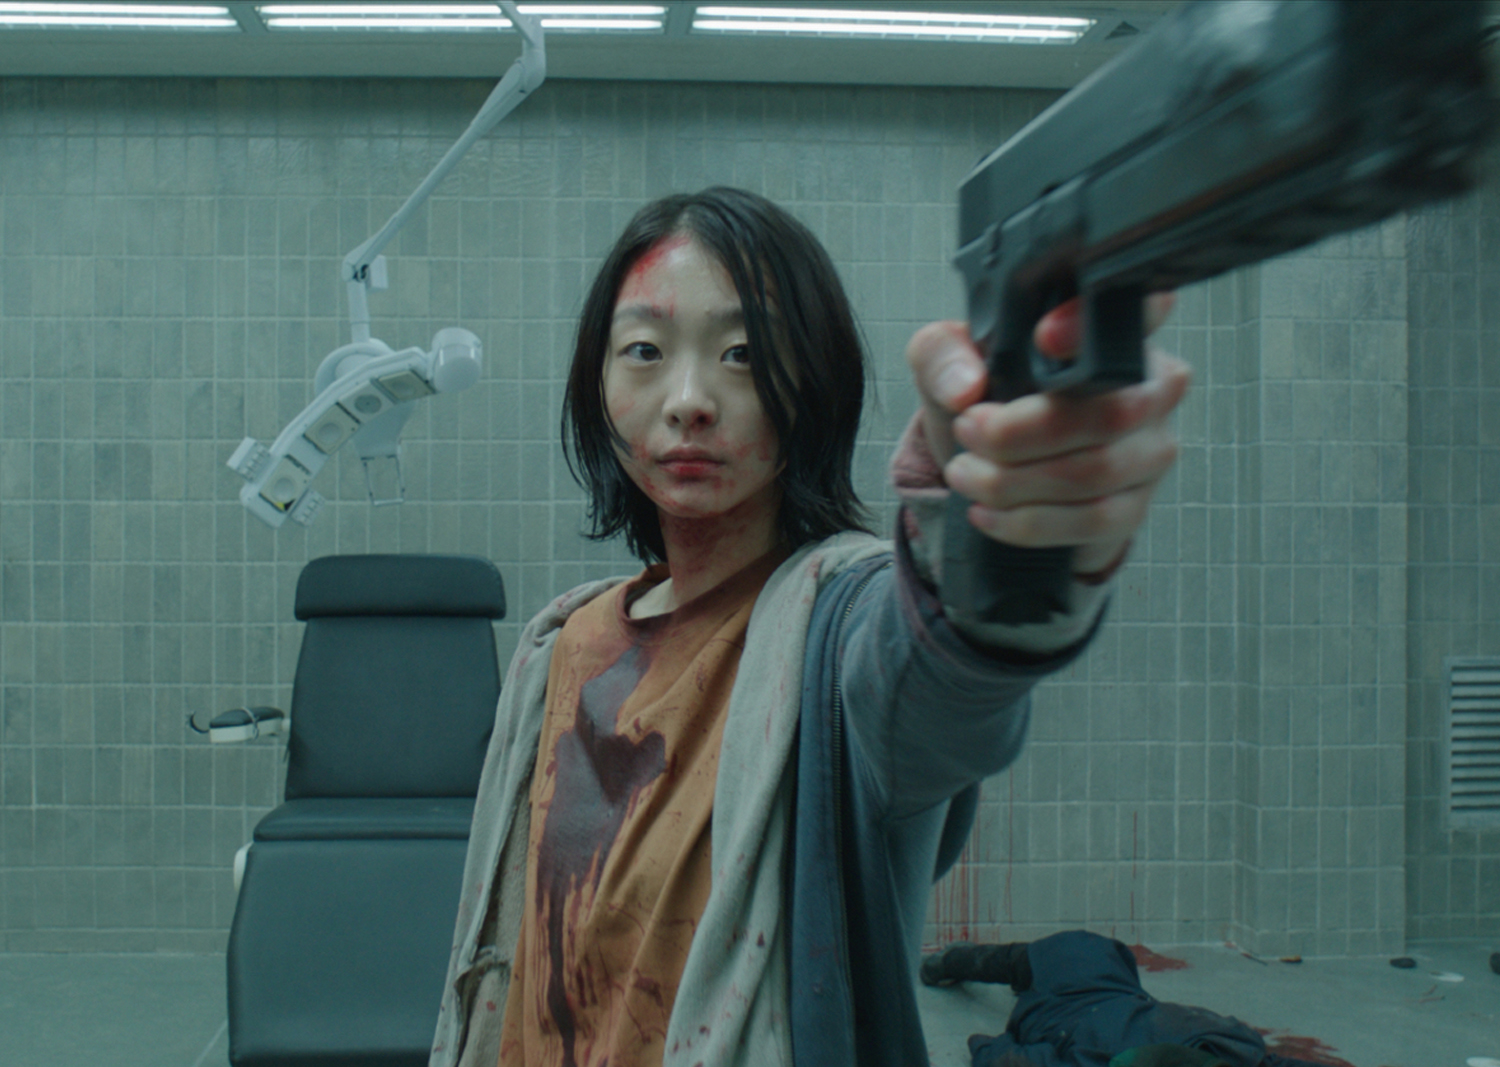 The psychically gifted Ja-yoon (Kim Da-me) in The Witch: Part 1 – Subversion (2018)